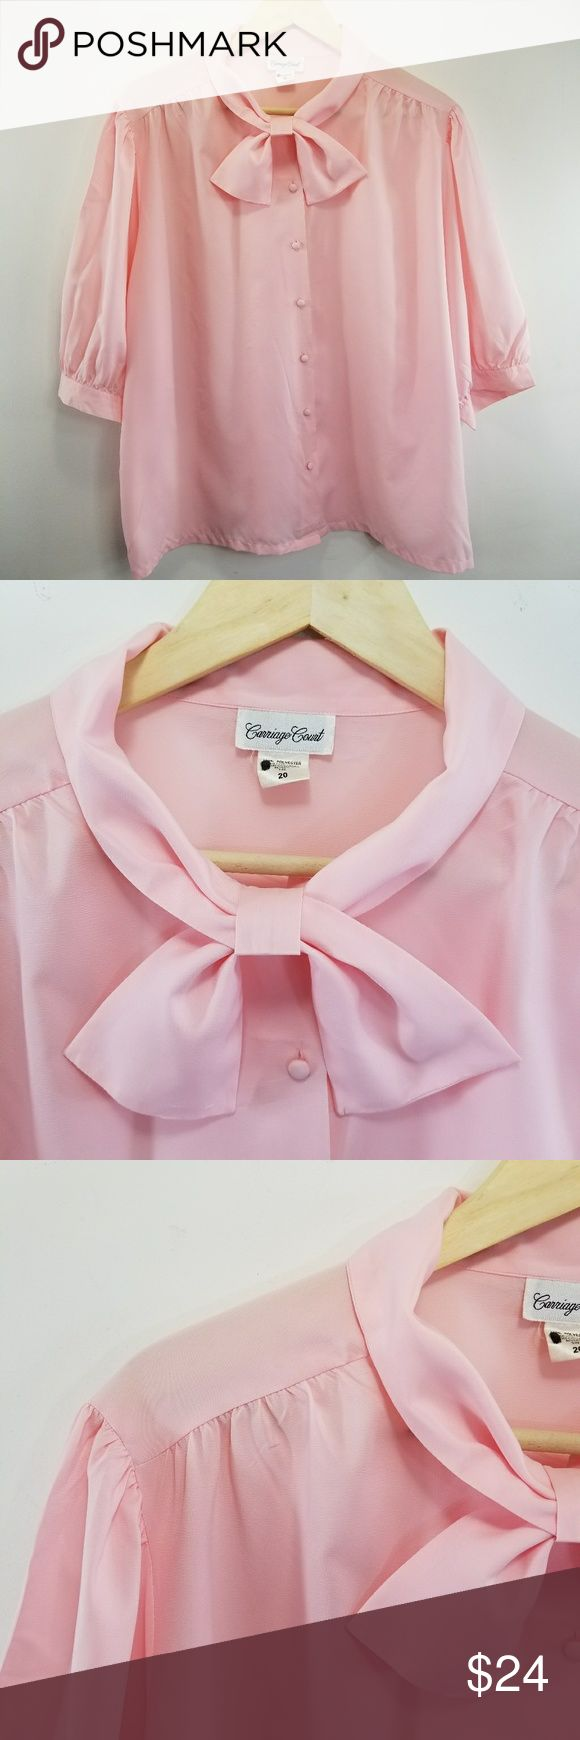 """Carriage Court Vintage Secretary Blouse Top 1980s Carriage Court  Style 83114 100% Polyester (does not stretch) Faux bow at neckline Button cuffs Pleated shoulders Fabric covered buttons  21"""" (53 cm) Sleeve circumference  15"""" (38 cm) sleeve length 50"""" (127 cm) chest 26"""" (66 cm) back of neck to bottom hem  Marker writing on care tag. See photos. Carriage Court Tops Blouses"""